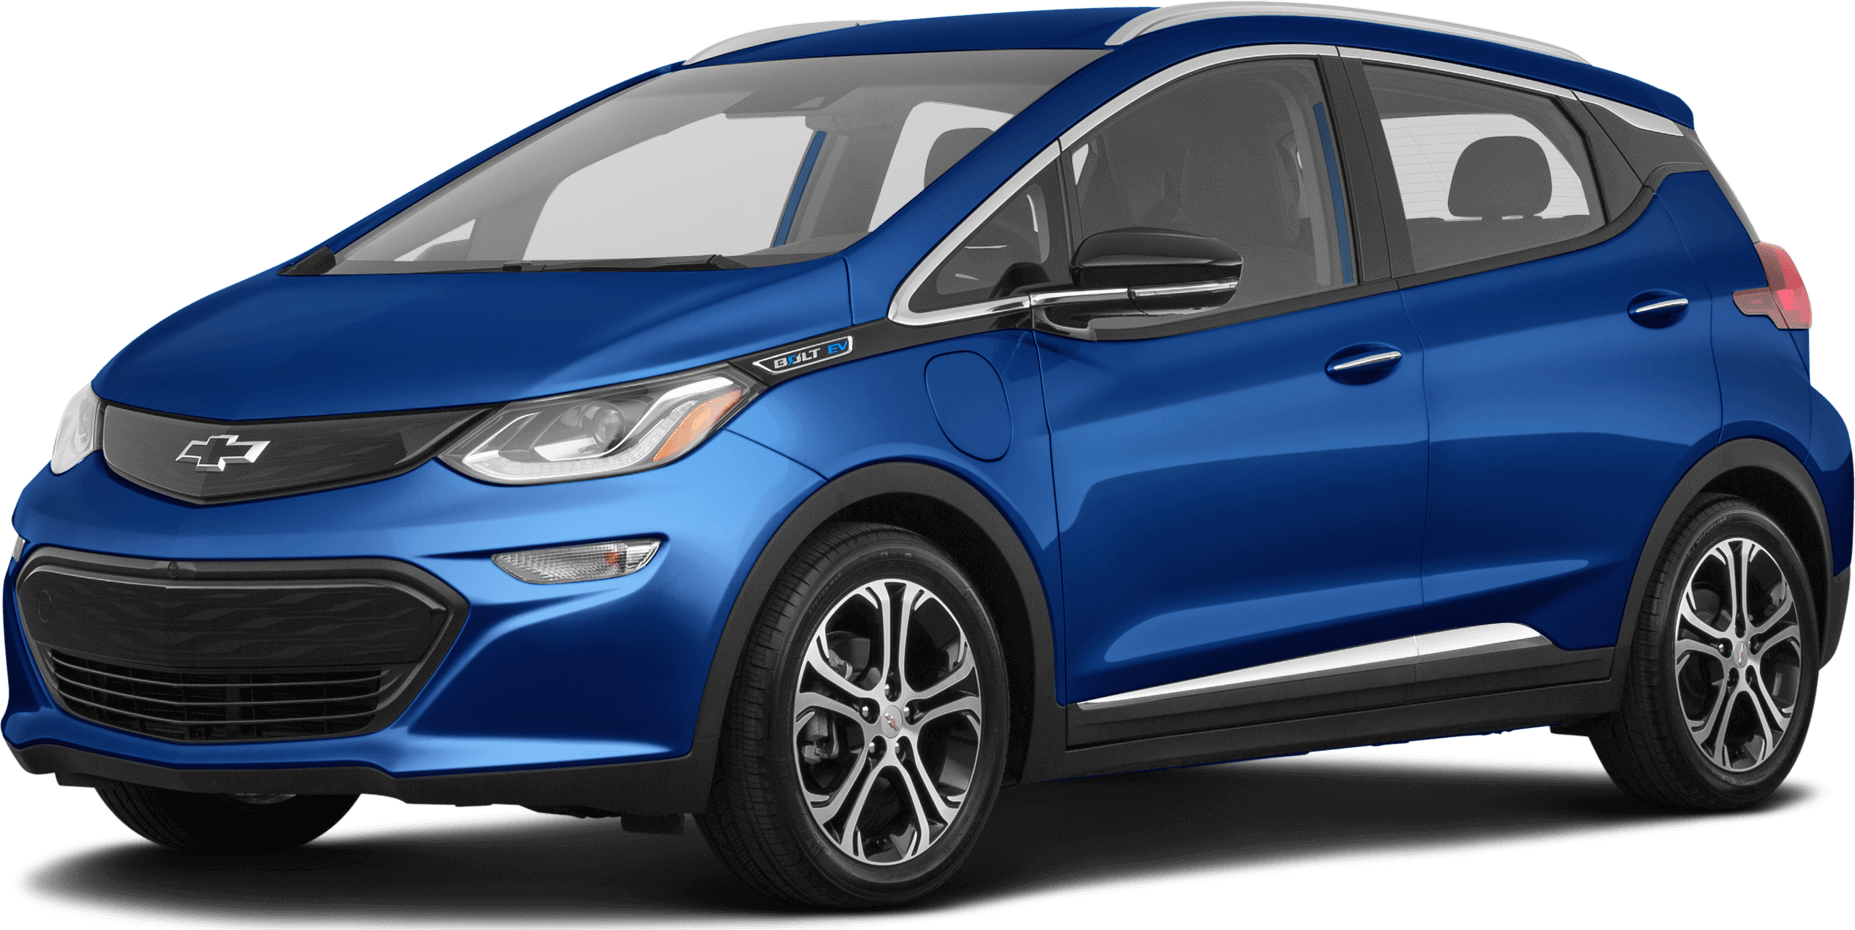 2019 Chevy Bolt LT